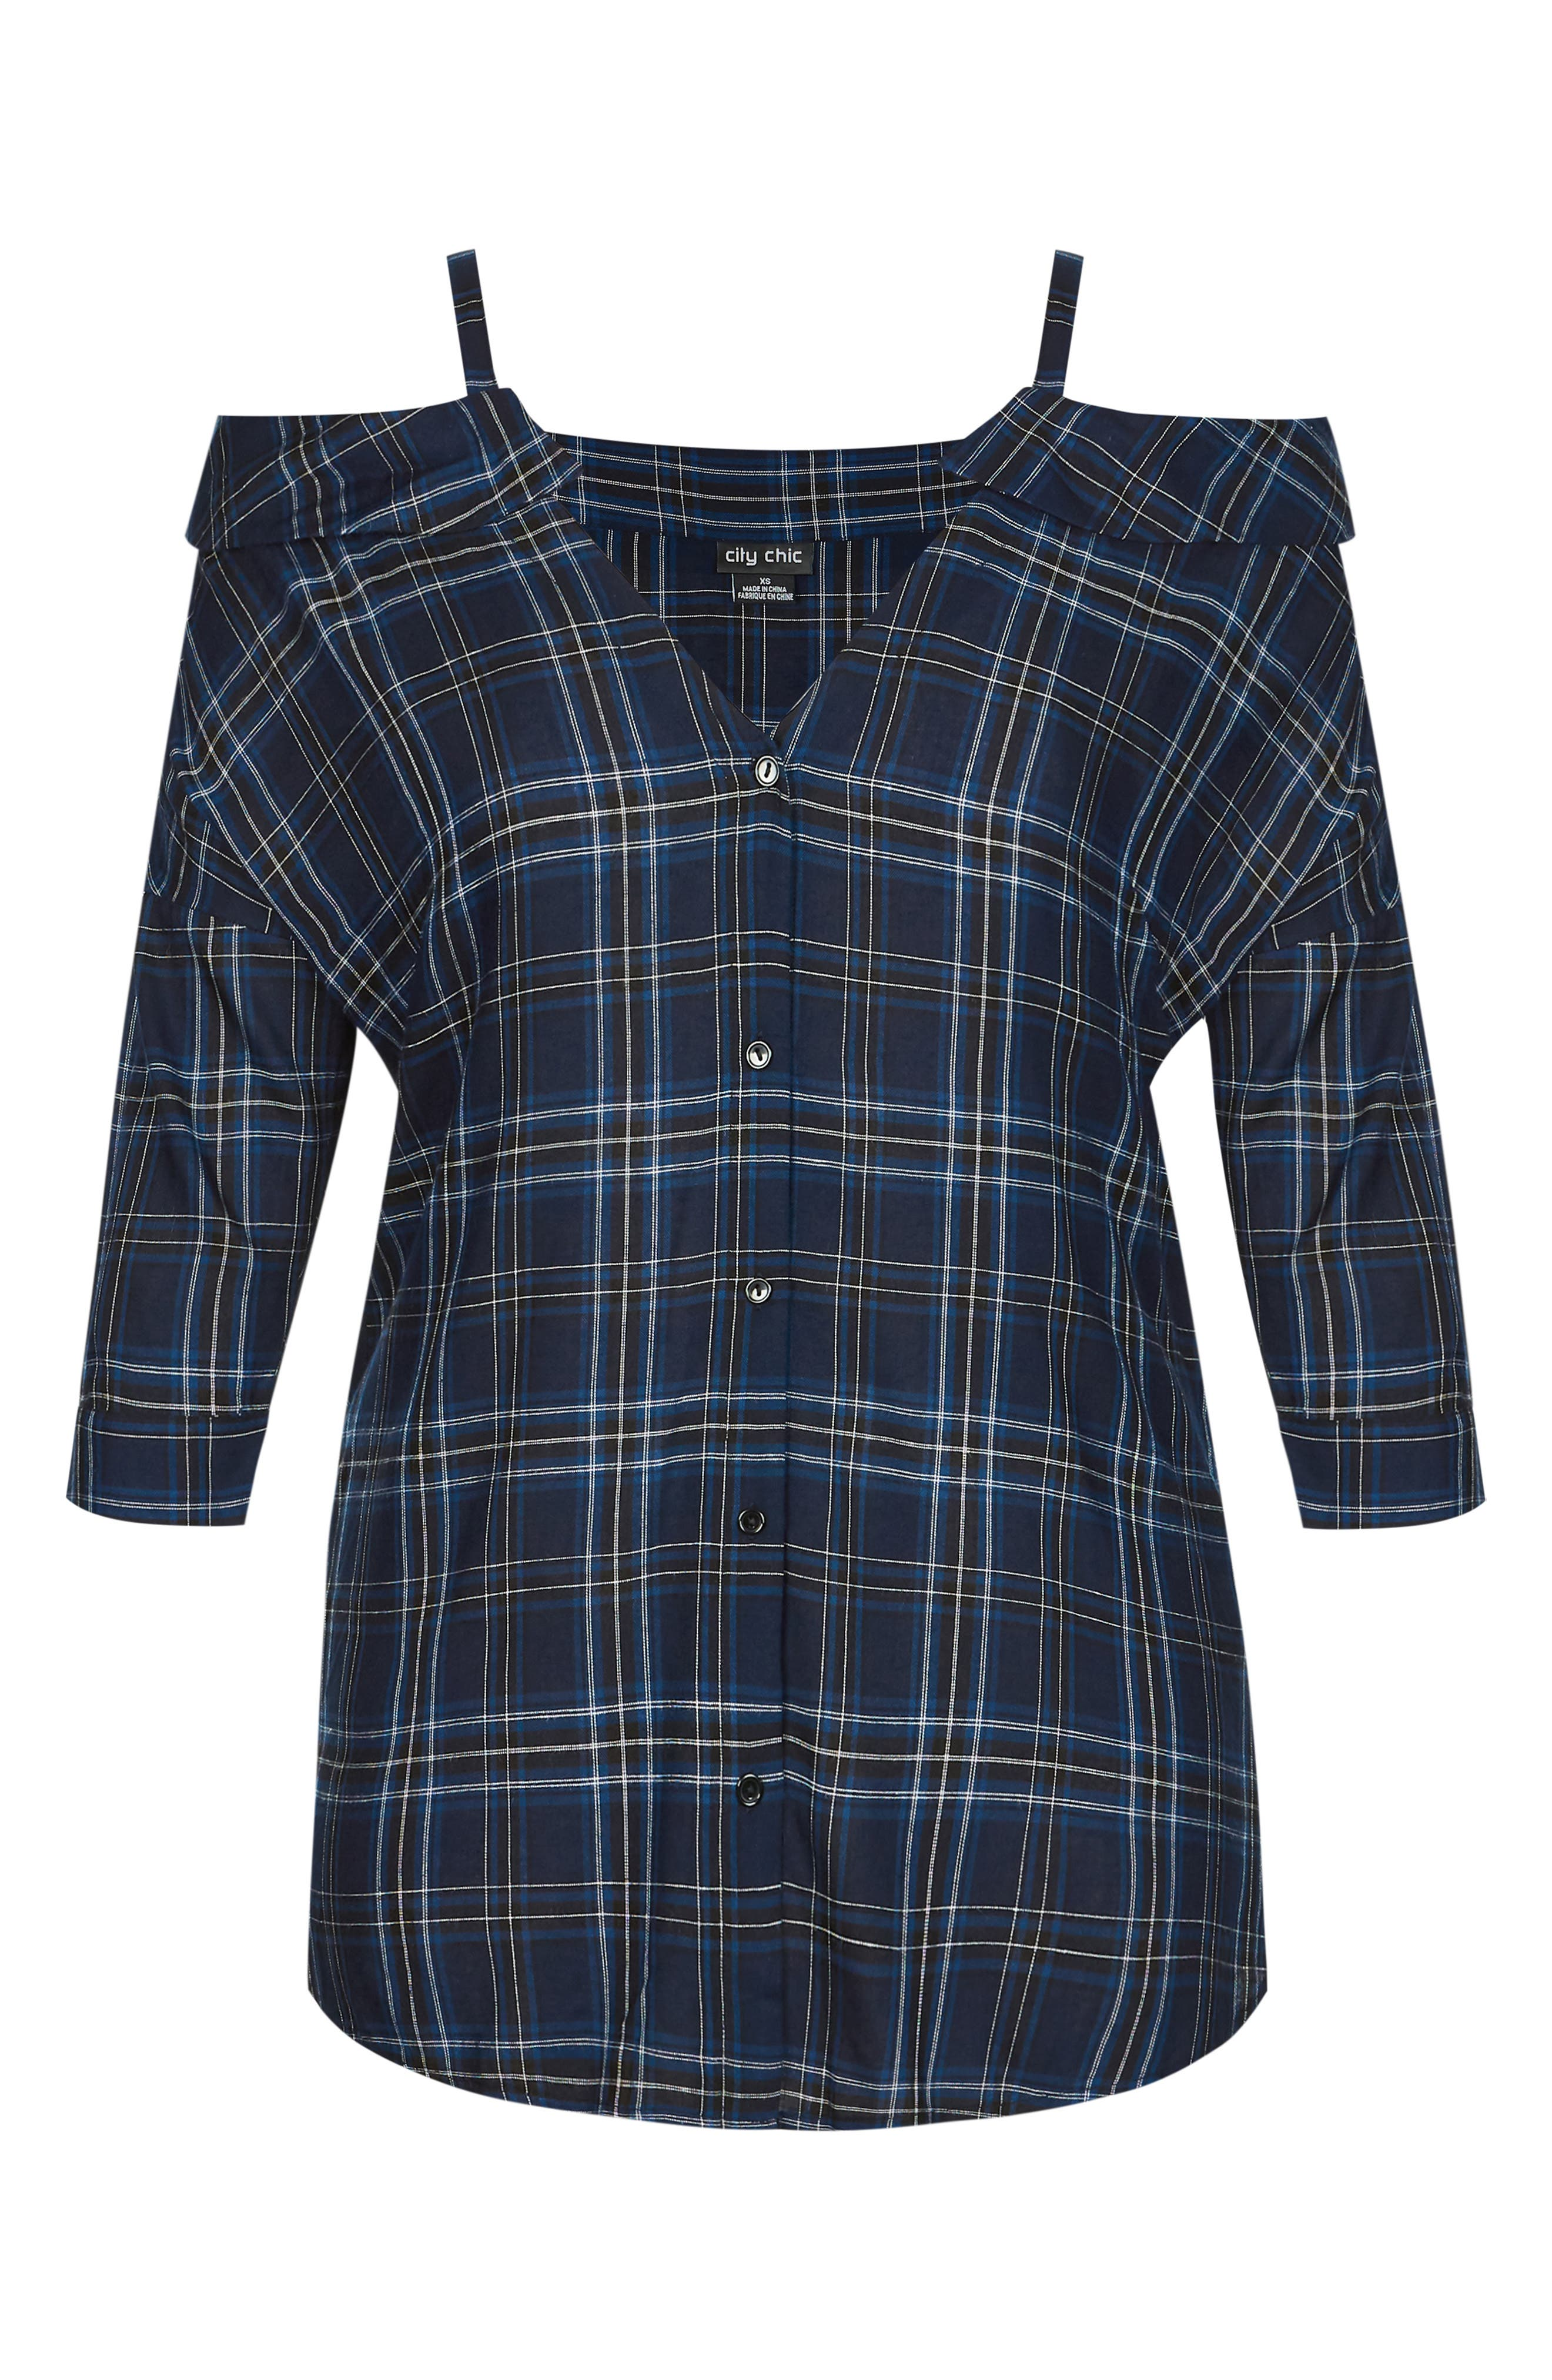 Chic Chic Reality Check Cold Shoulder Top,                             Alternate thumbnail 3, color,                             NAVY/ BLUE CHECK